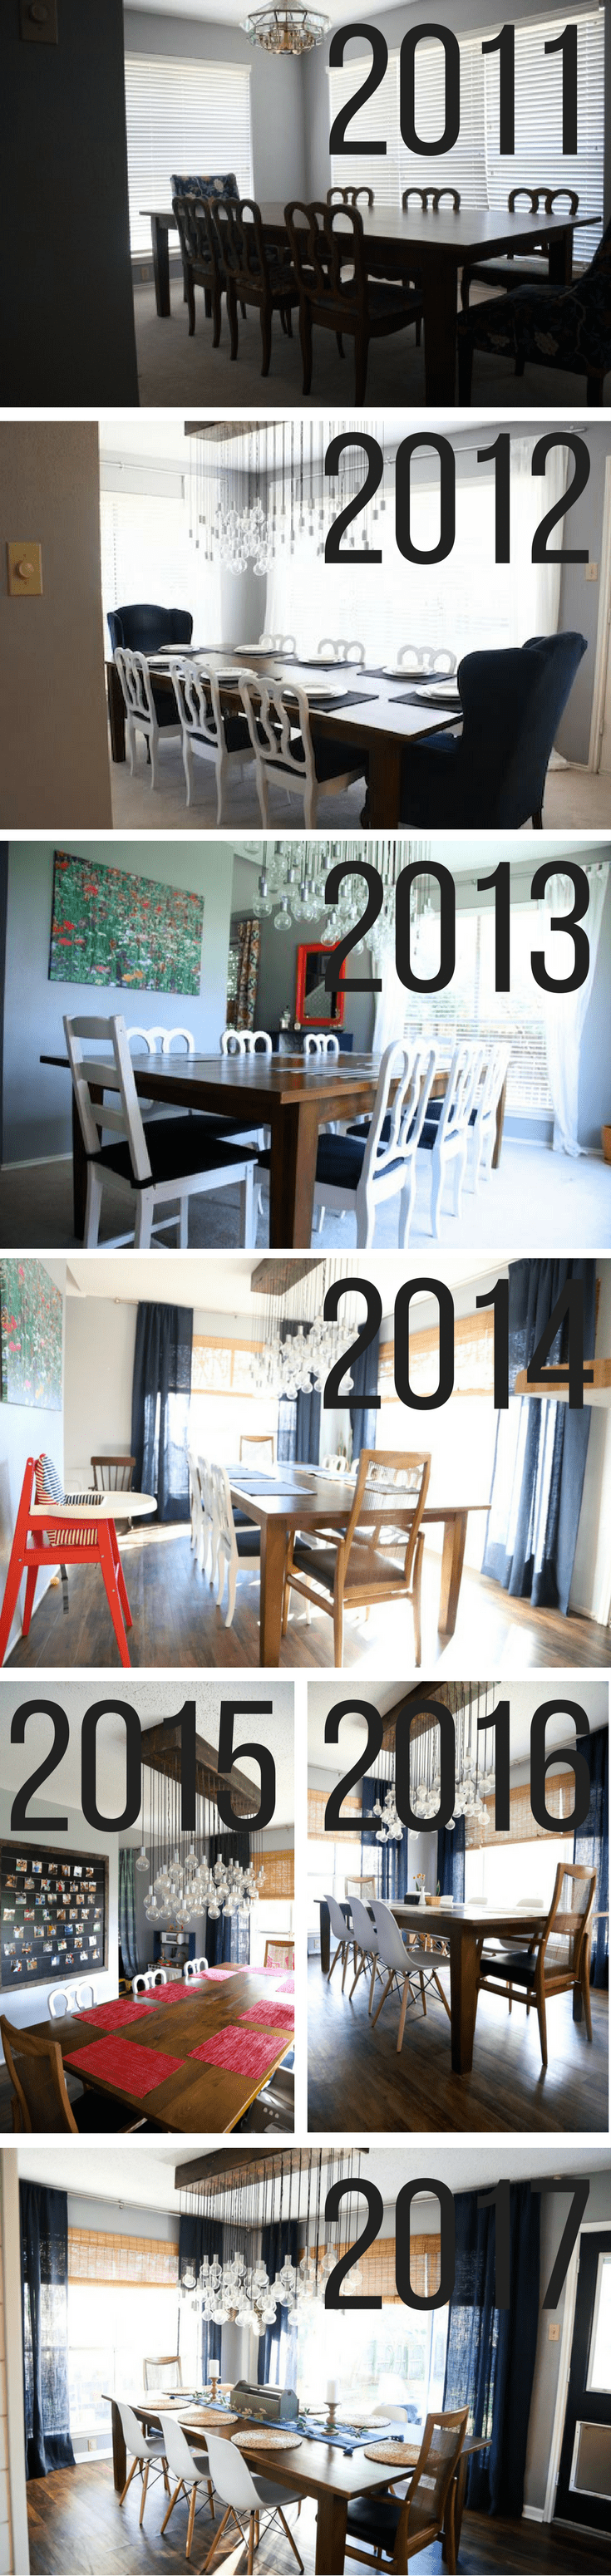 A look at the evolution of a dining room throughout the years. Ideas for how to decorate a dining room